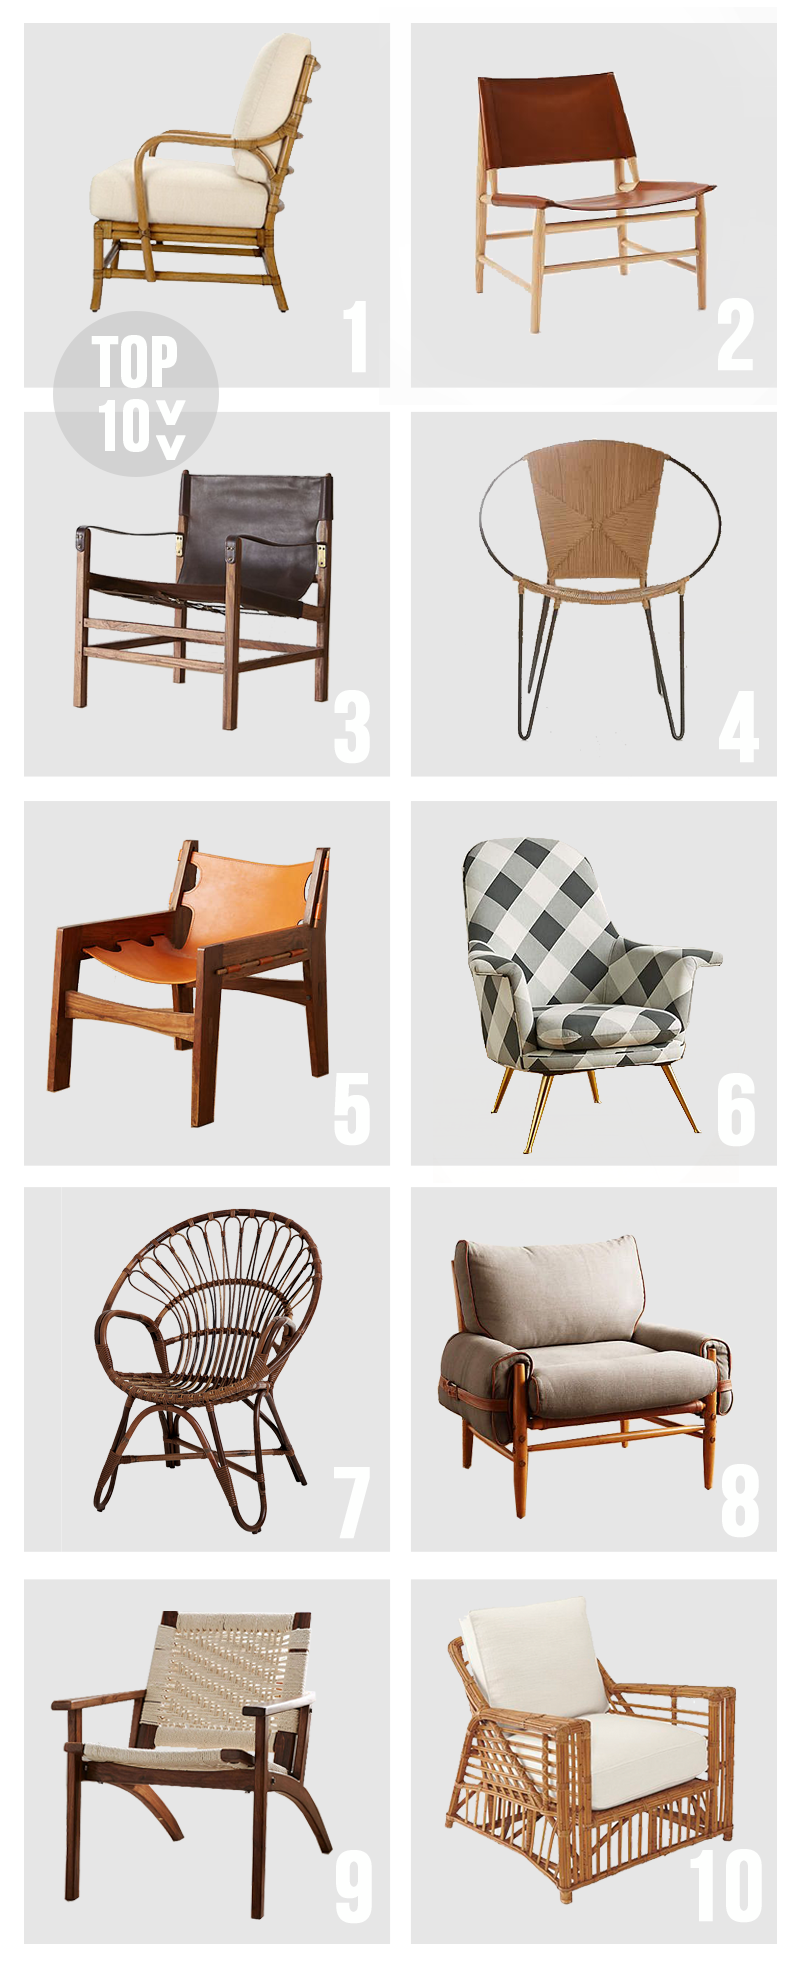 I Love Me Some Purrrrdy Accent Chairs U2013 Whether Theyu0027re Rattan, Leather,